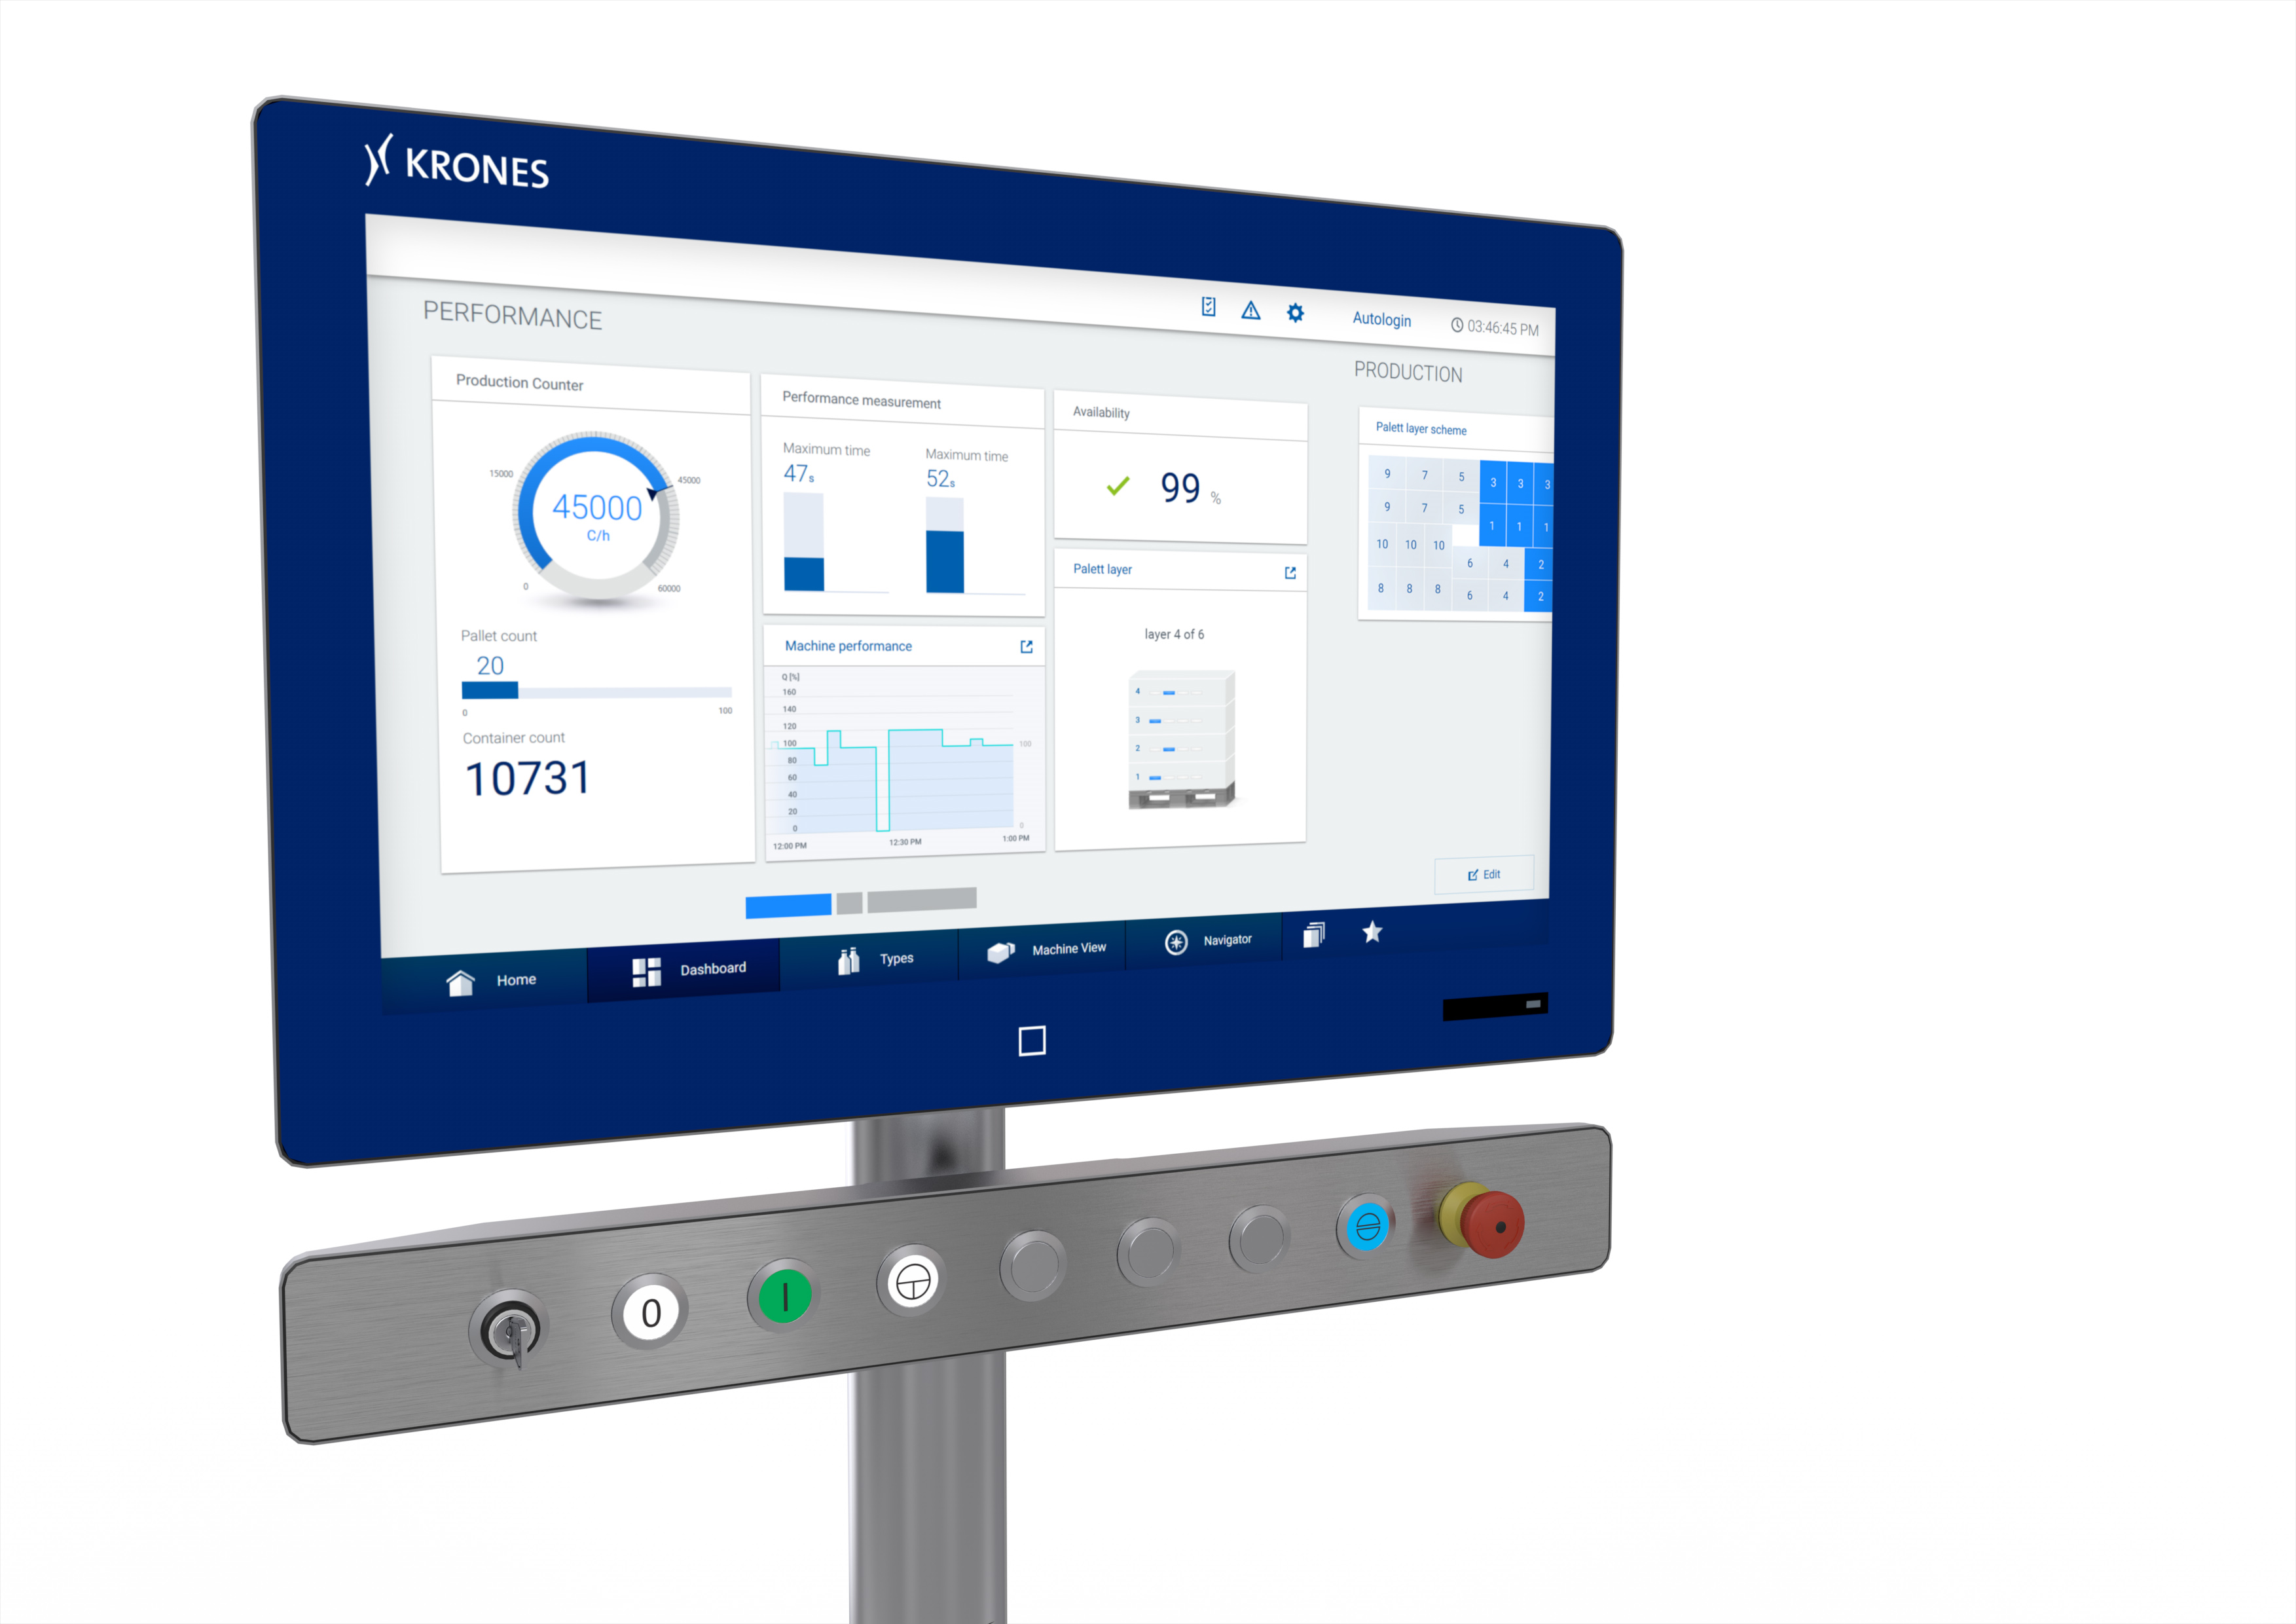 Krones' Connected HMI has won the iF Design Award for its intuitive operator control and a user-friendly, innovative navigational concept.